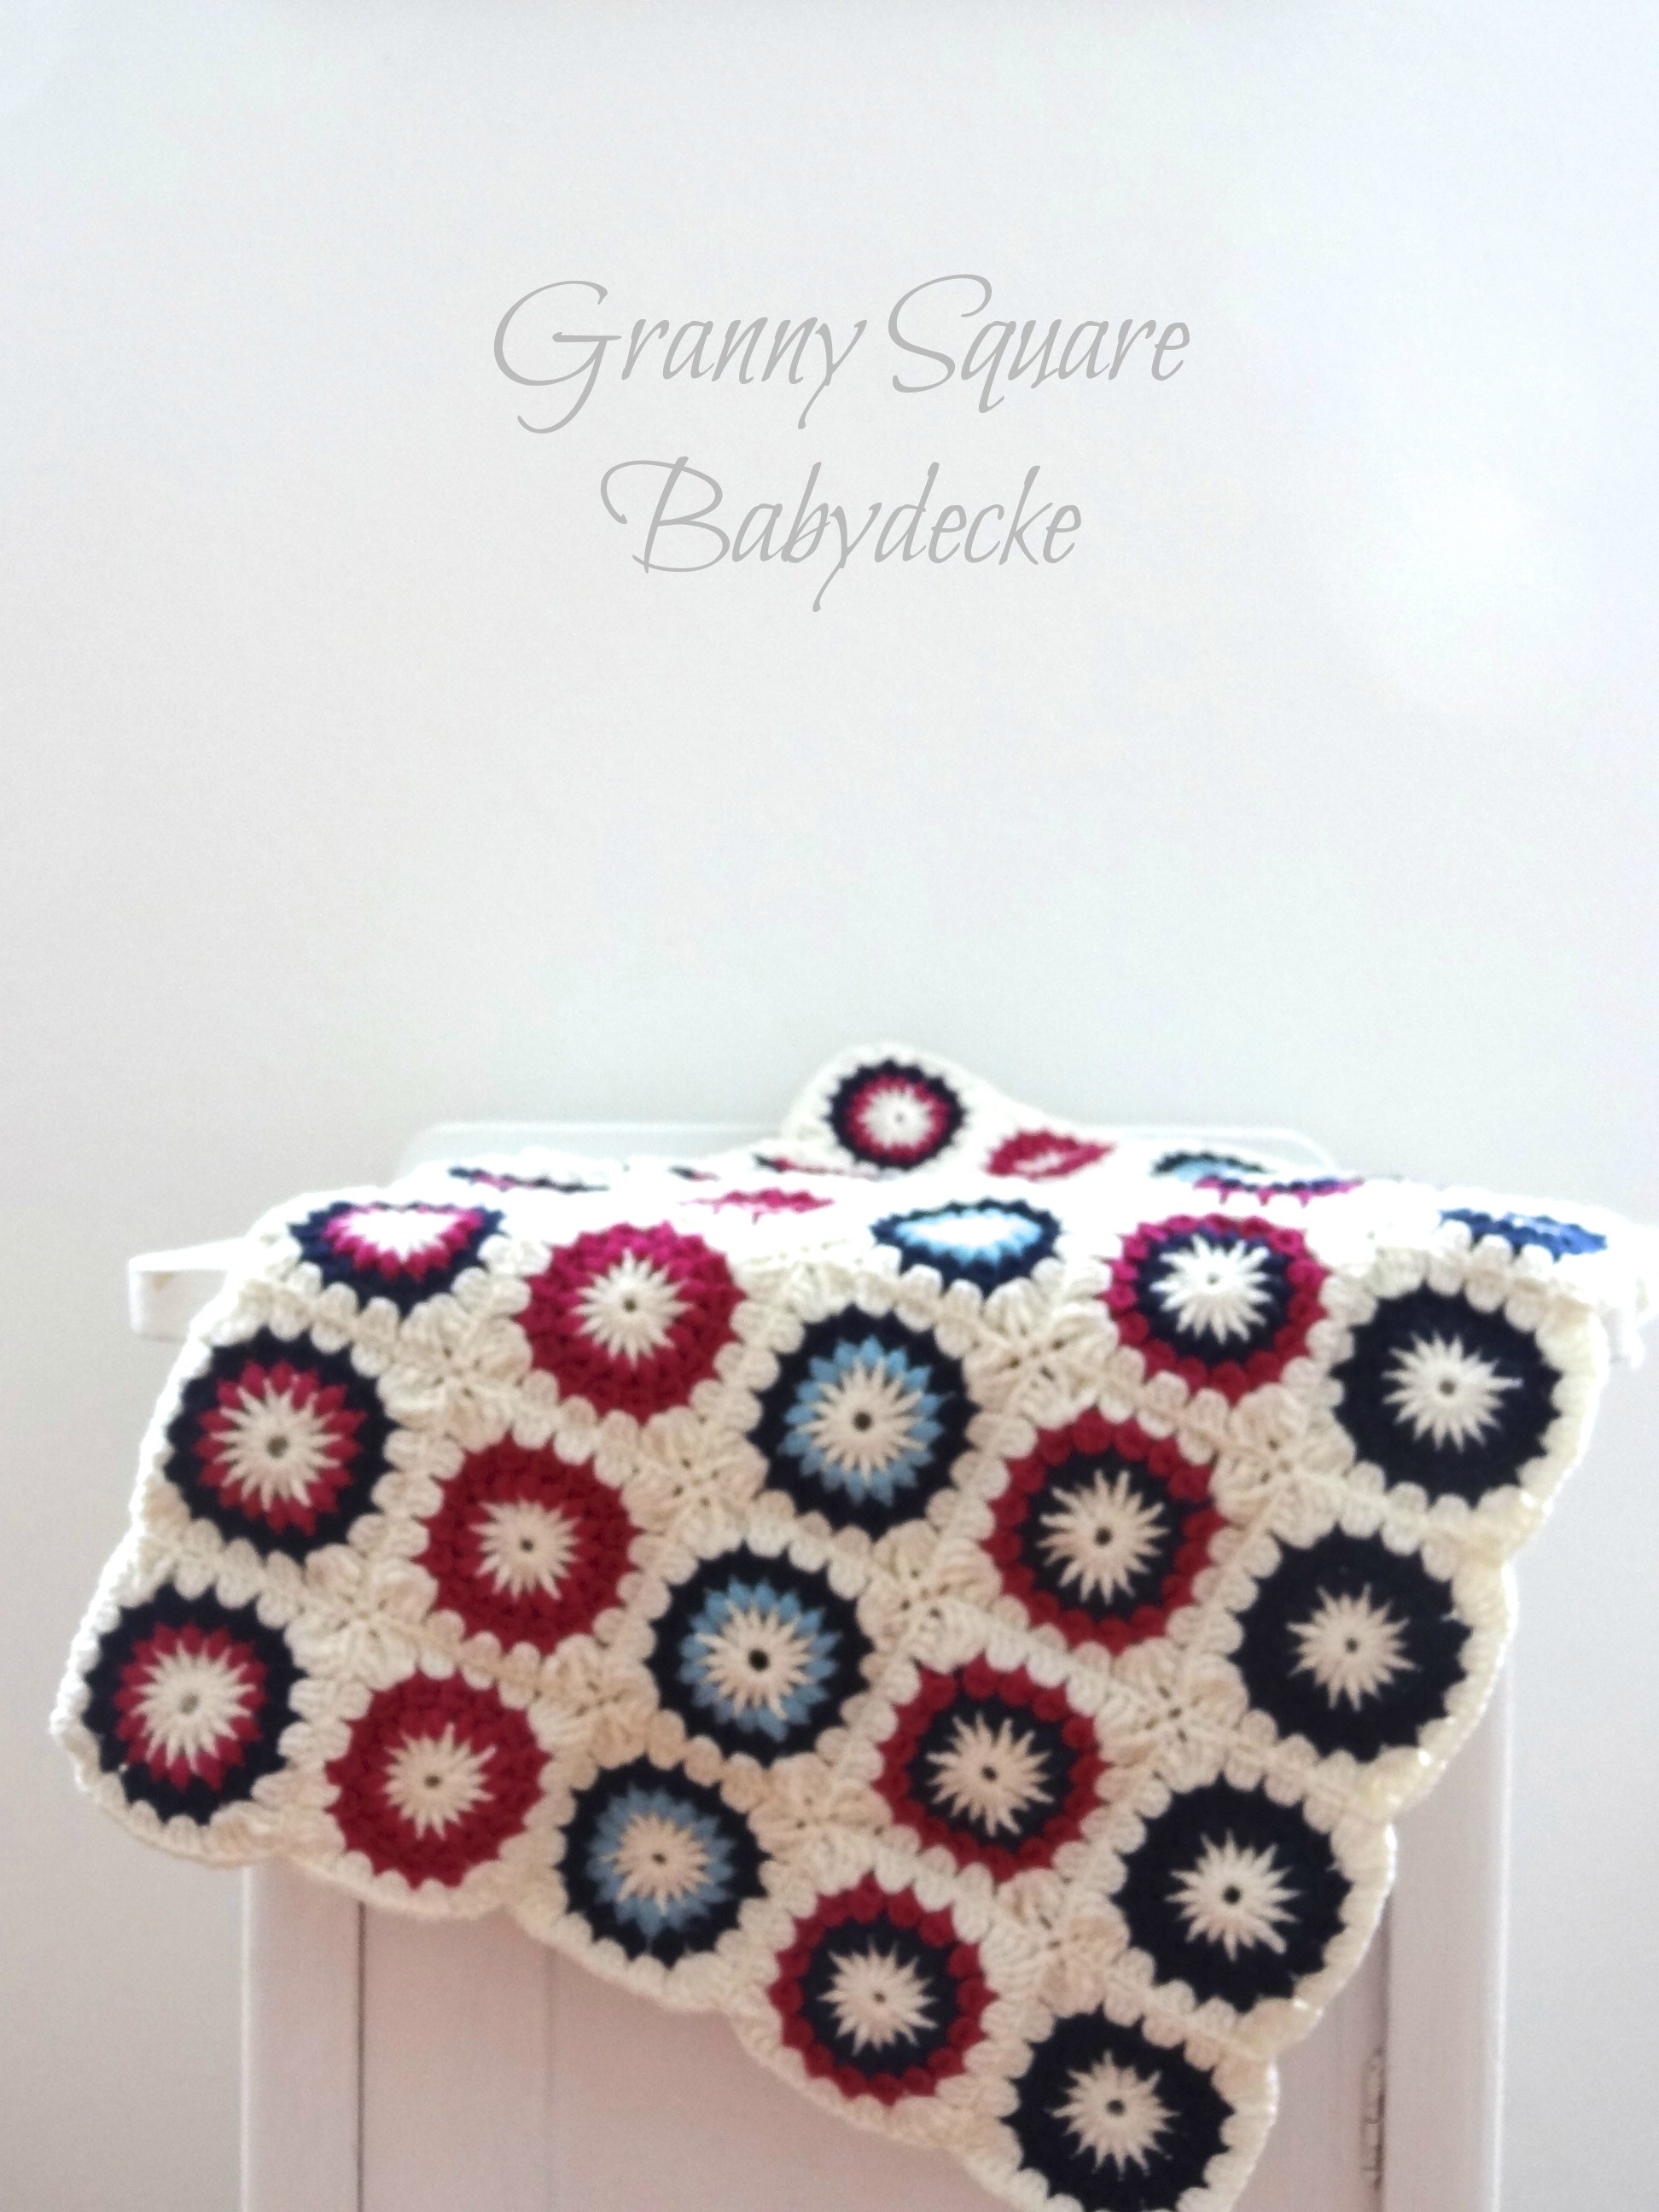 Do-it-yourself: Granny Square Babydecke – sweet times